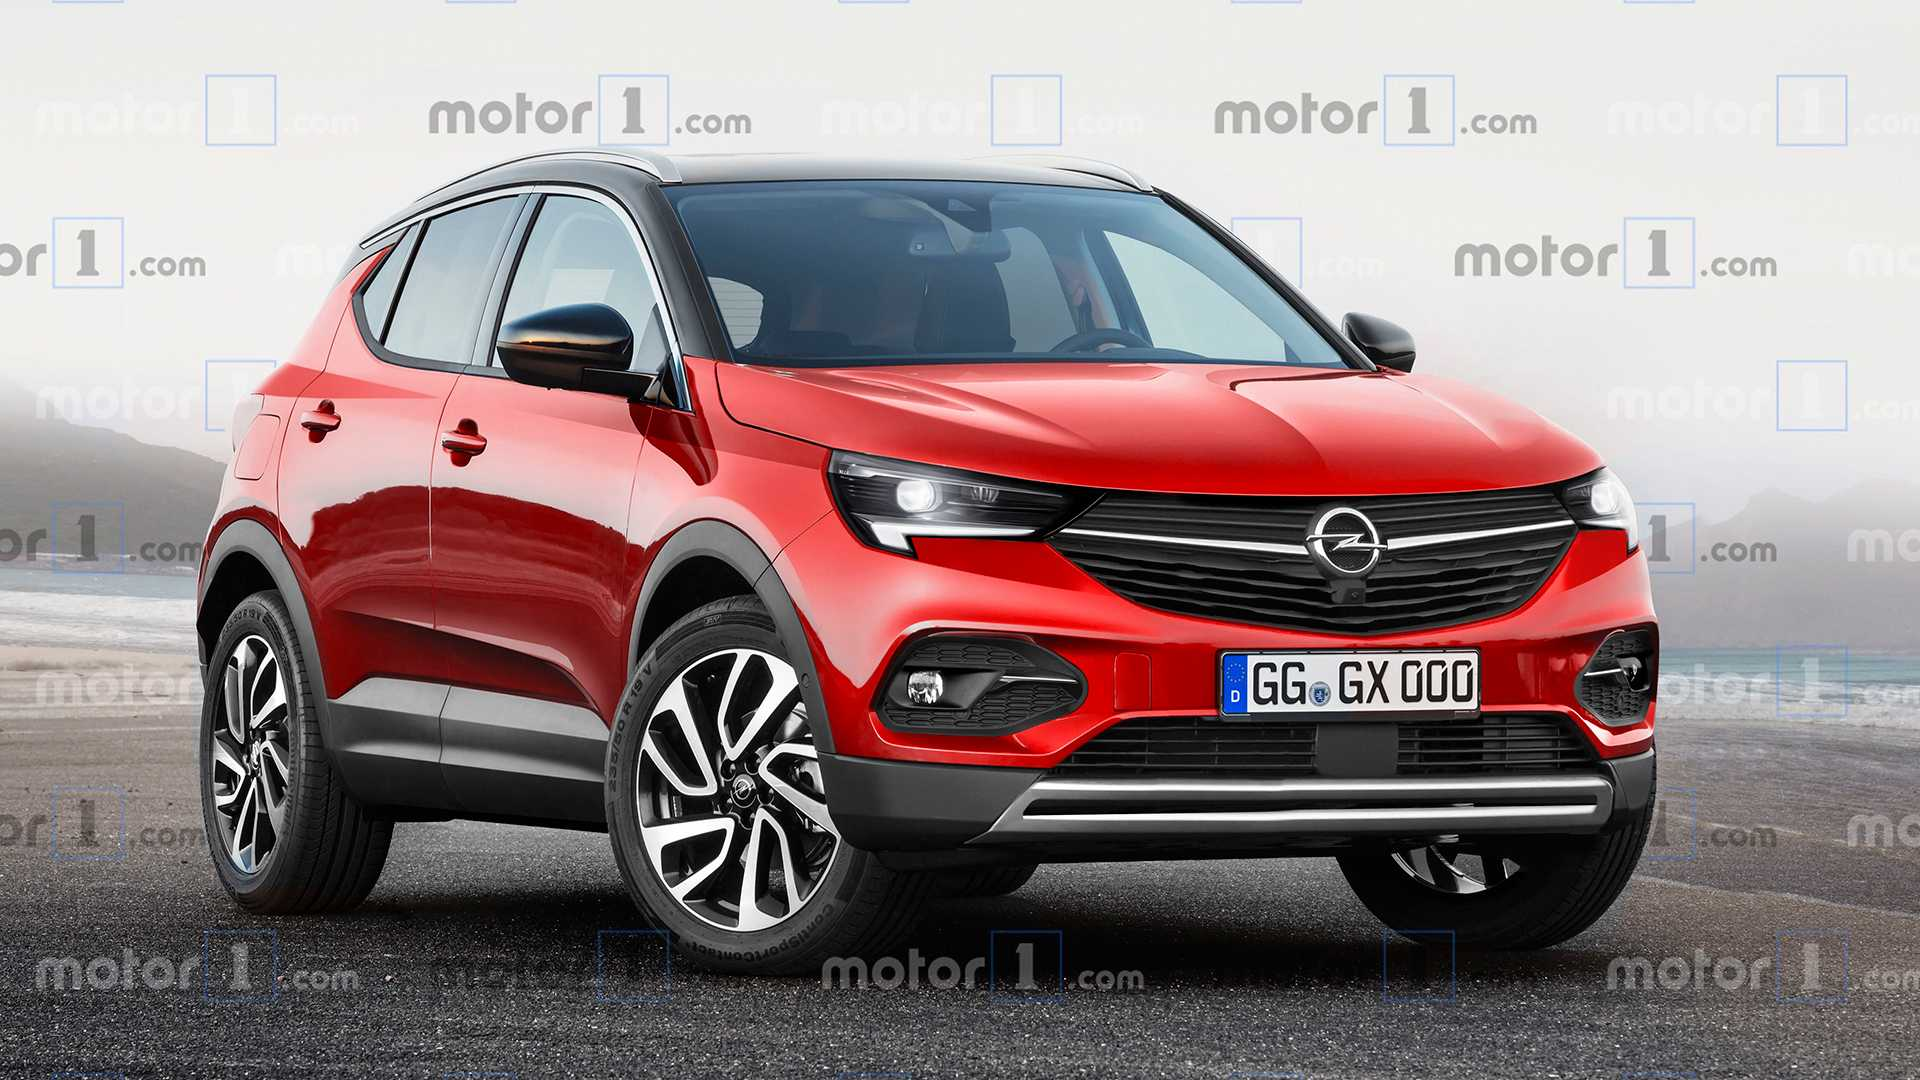 44 The Best Nuevo Opel Mokka X 2020 Price Design And Review